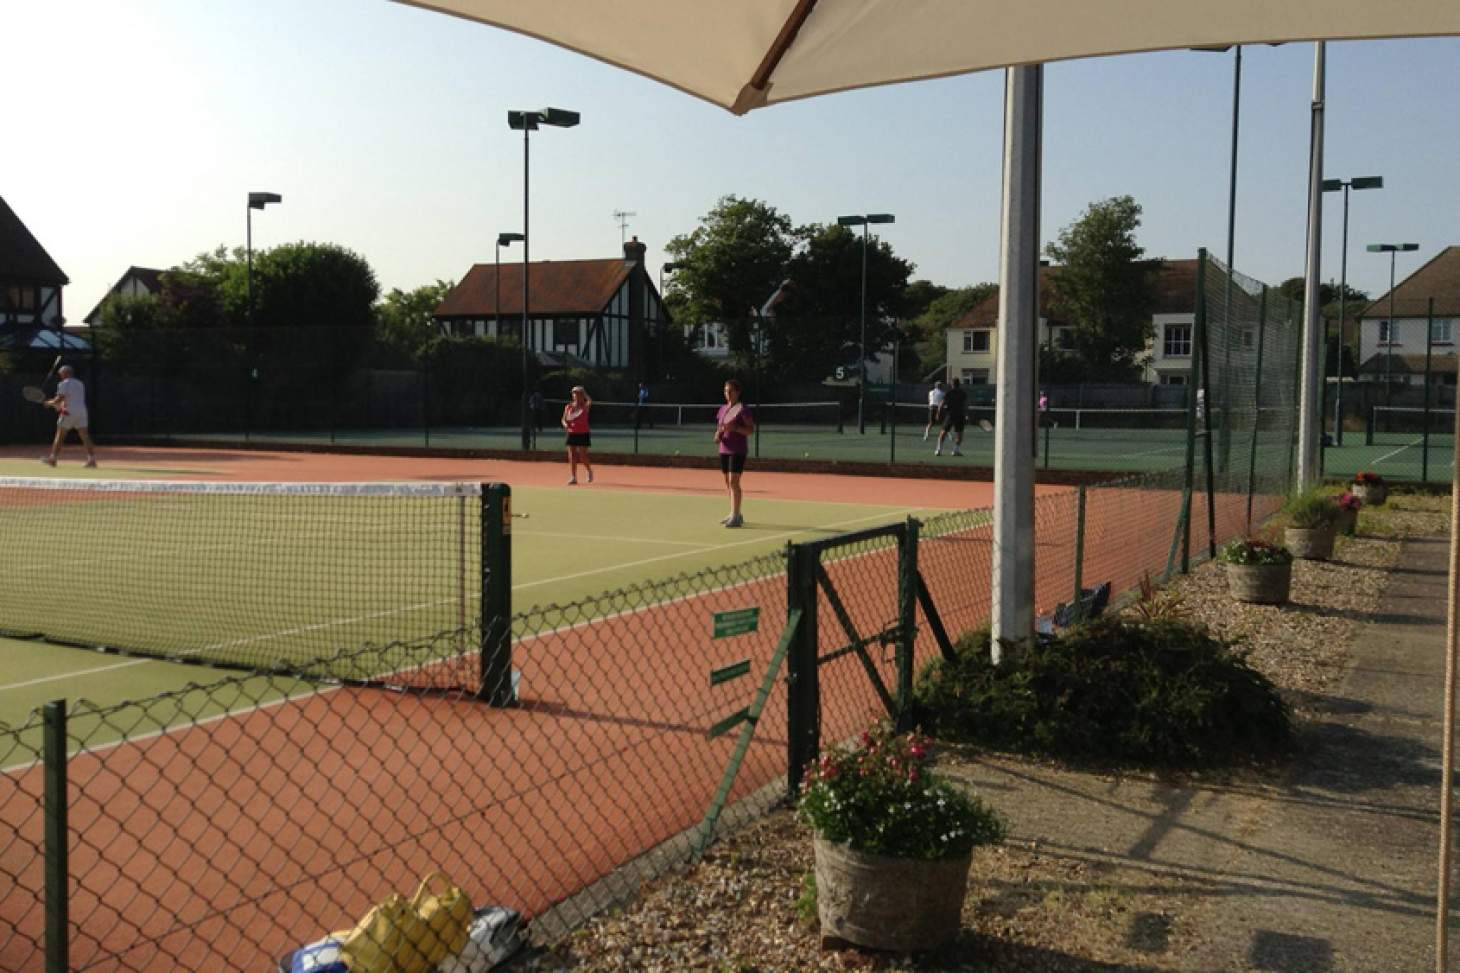 Sussex County Lawn Tennis Club Outdoor | Astroturf tennis court